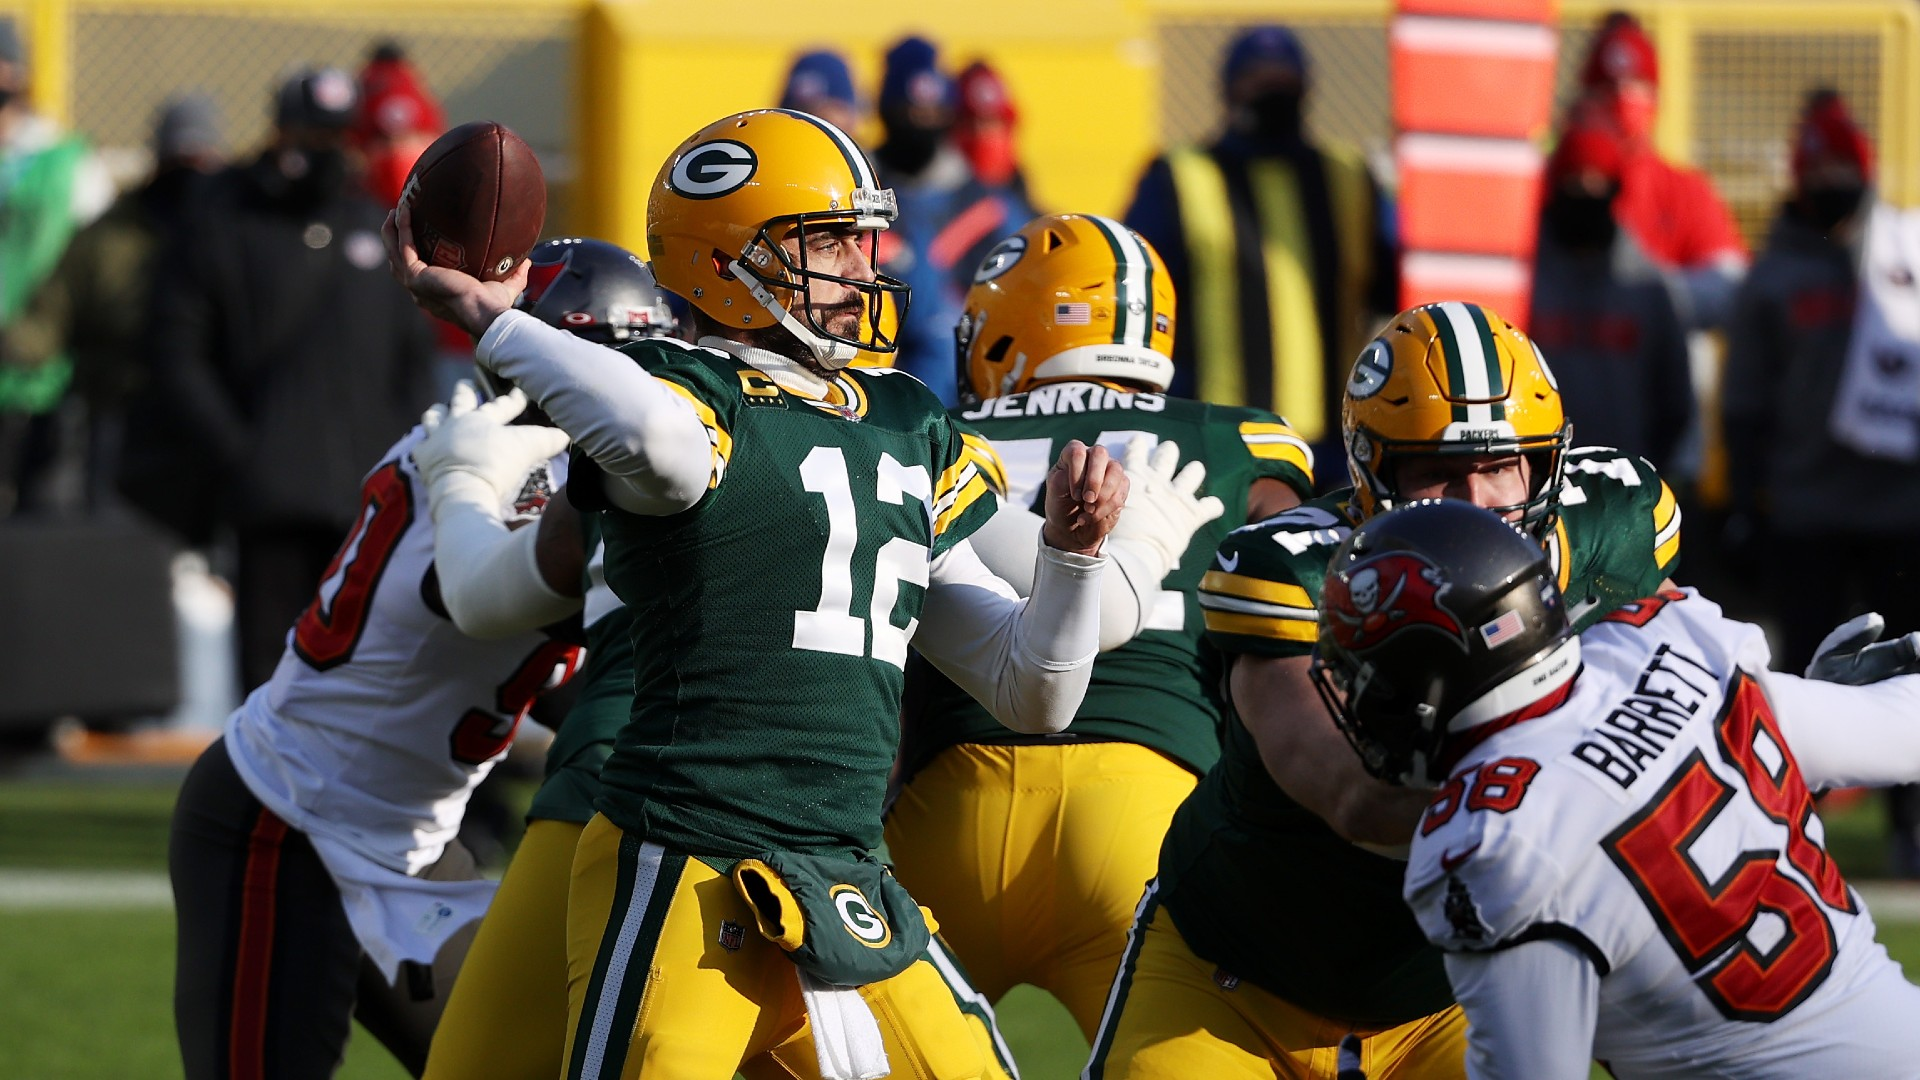 Aaron Rodgers completes offseason training before Packers camp starts, report says